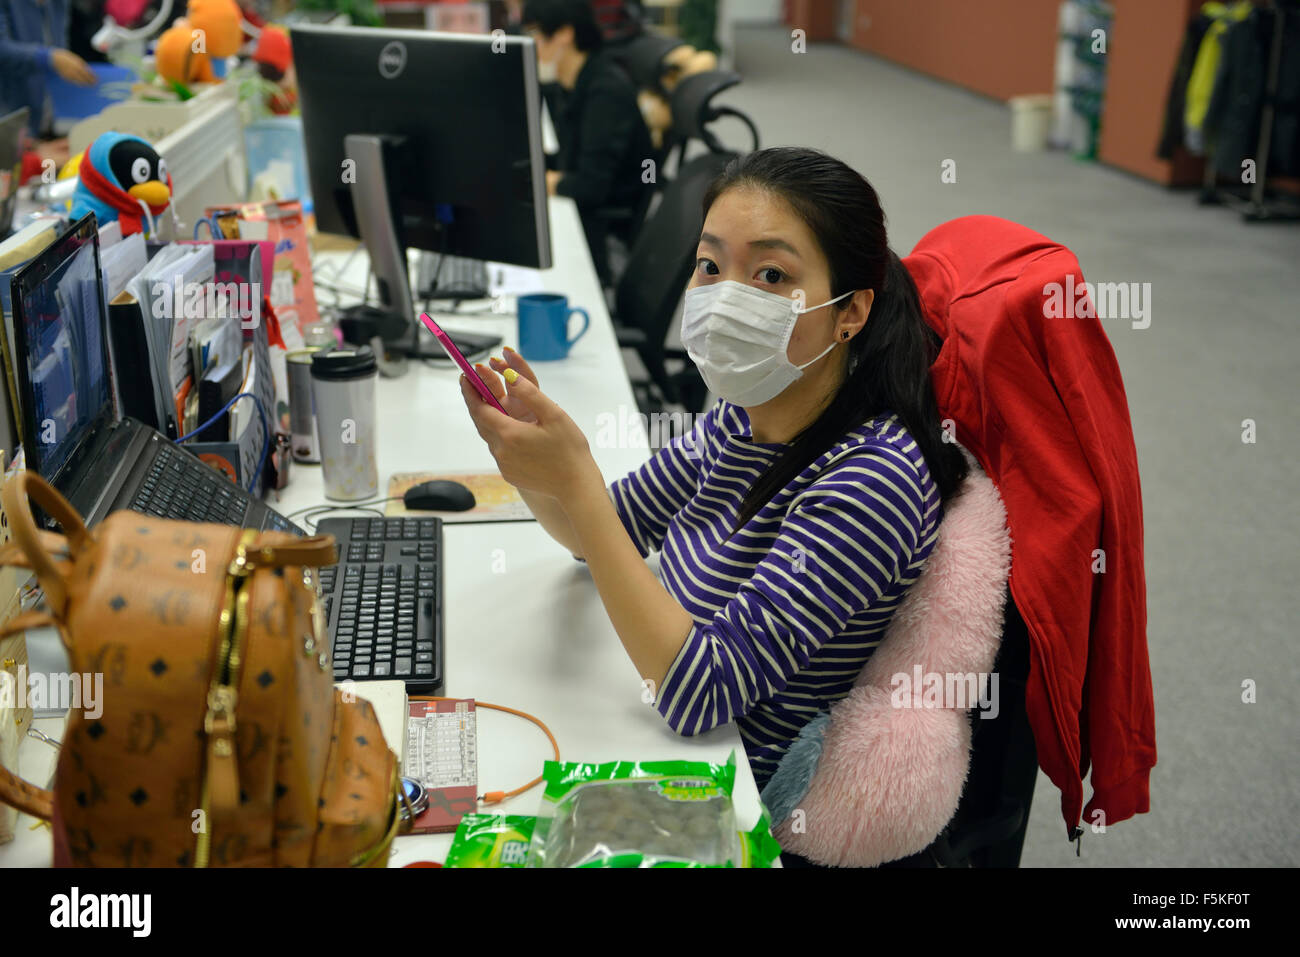 A lady wears mask while working in office in Beijing. Some people have to wear masks when severe smog hits Beijing. - Stock Image